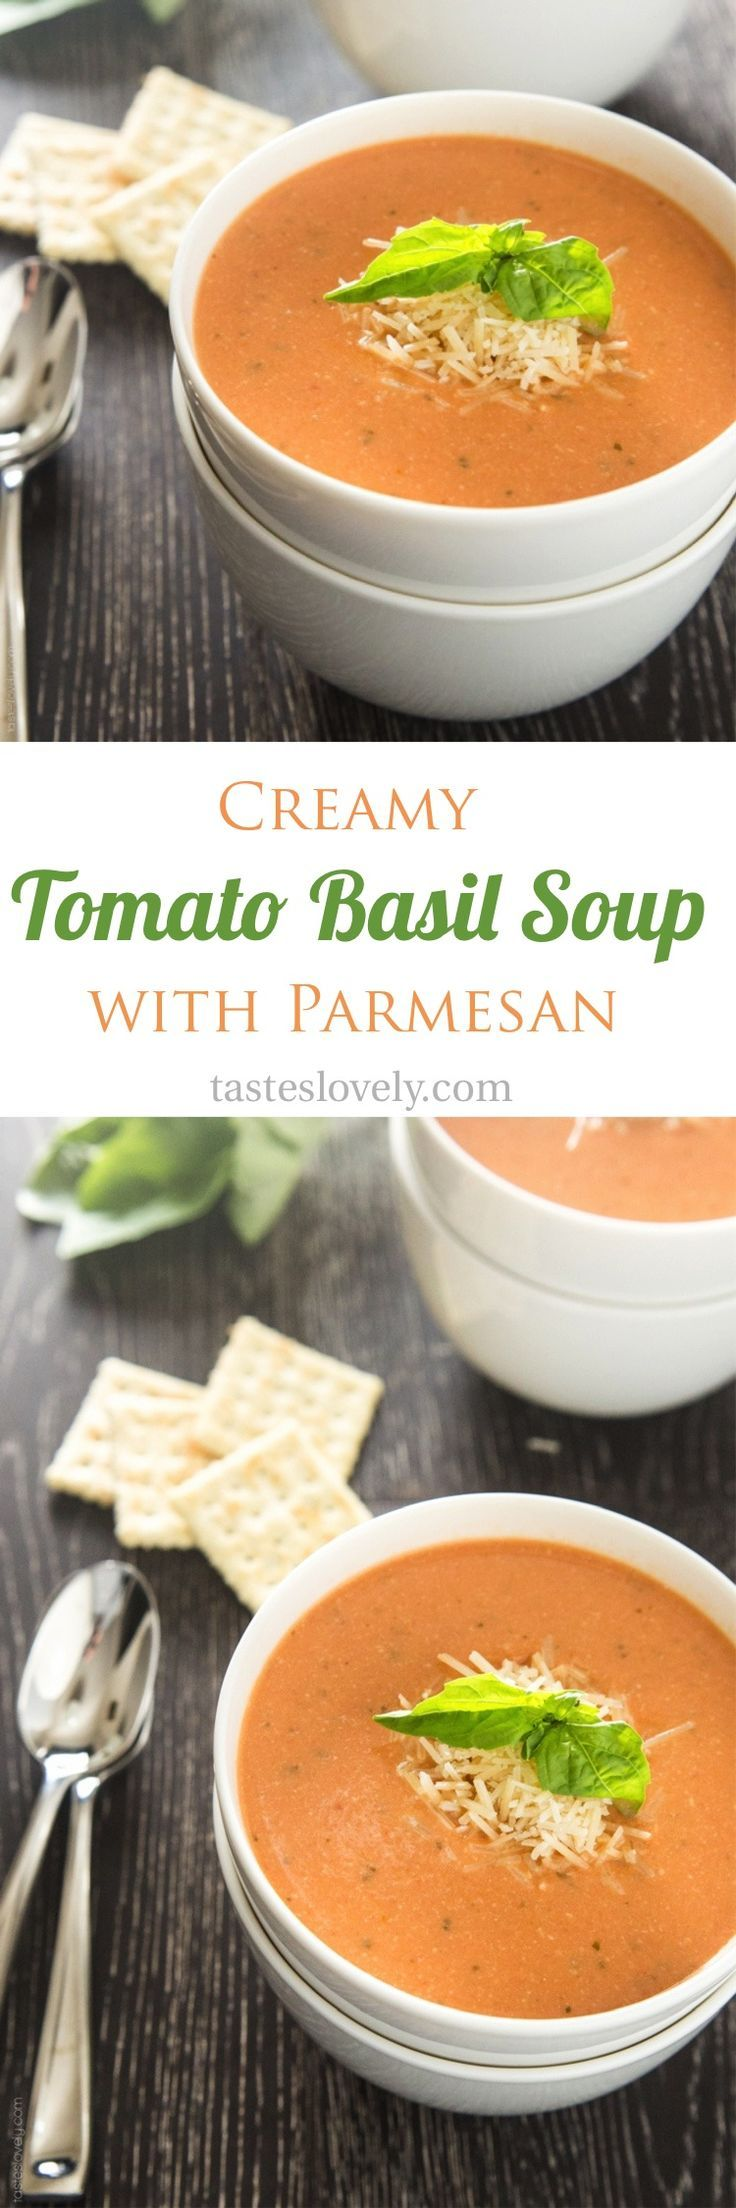 Creamy tomato basil soup with parmesan cheese